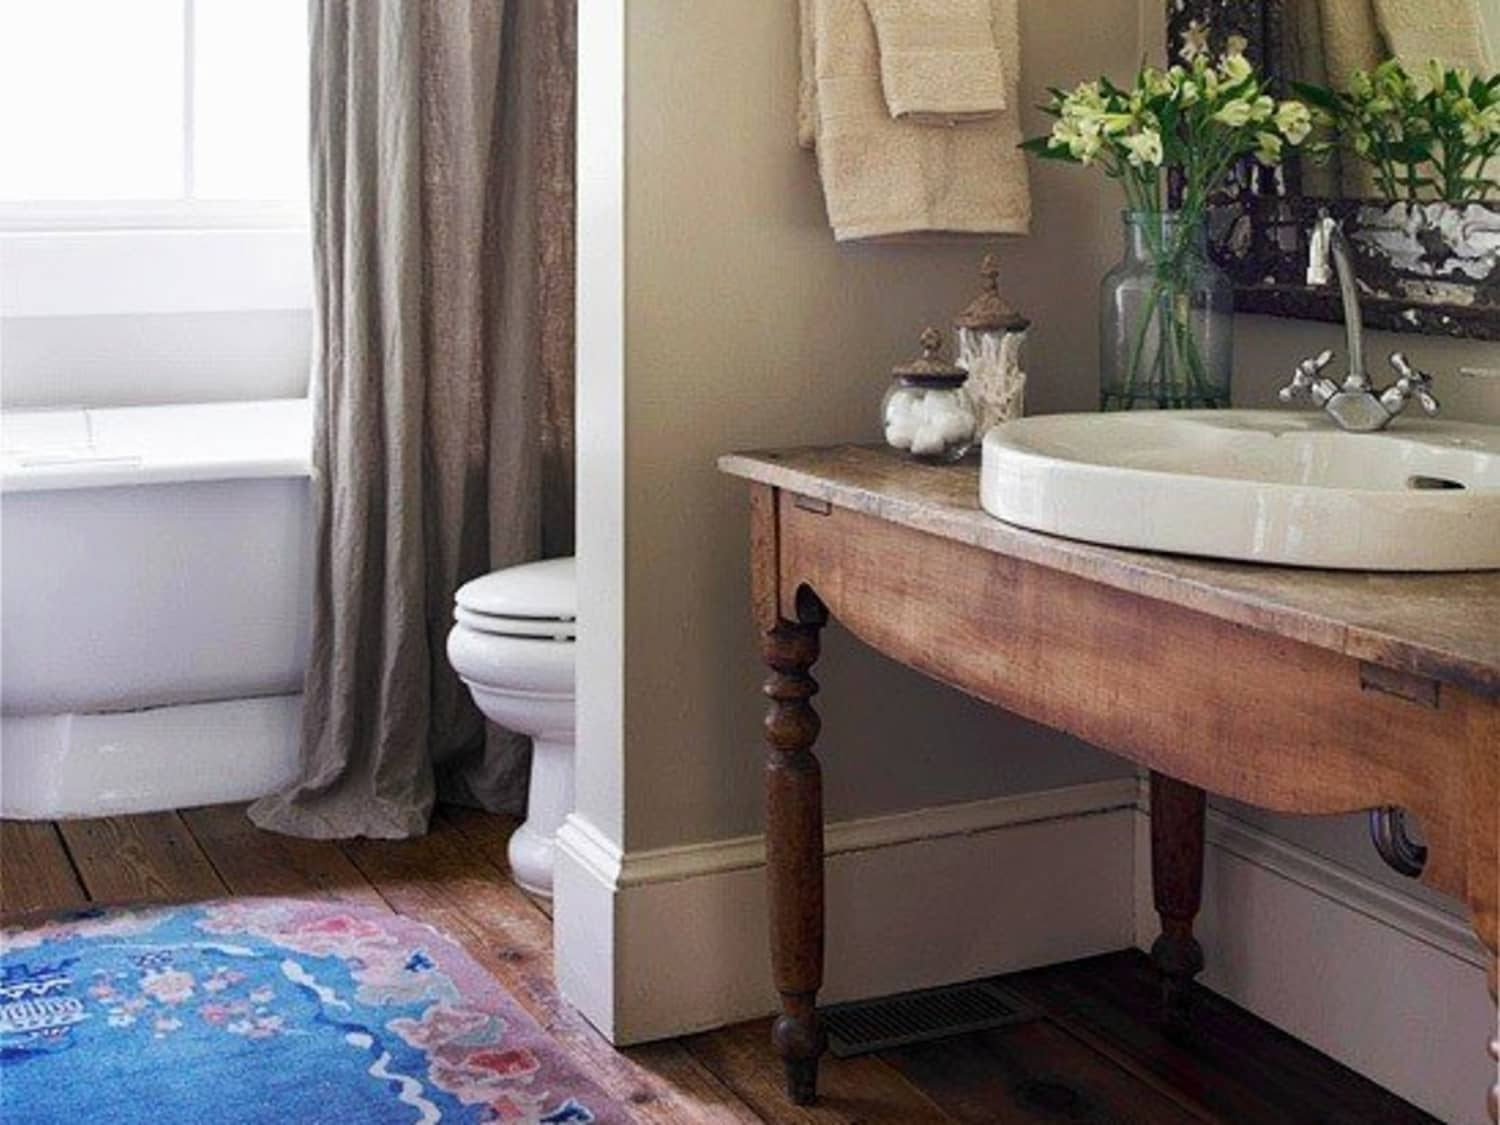 Renovation Inspiration Using Vintage Furniture As Bathroom Sink Cabinets Consoles Apartment Therapy